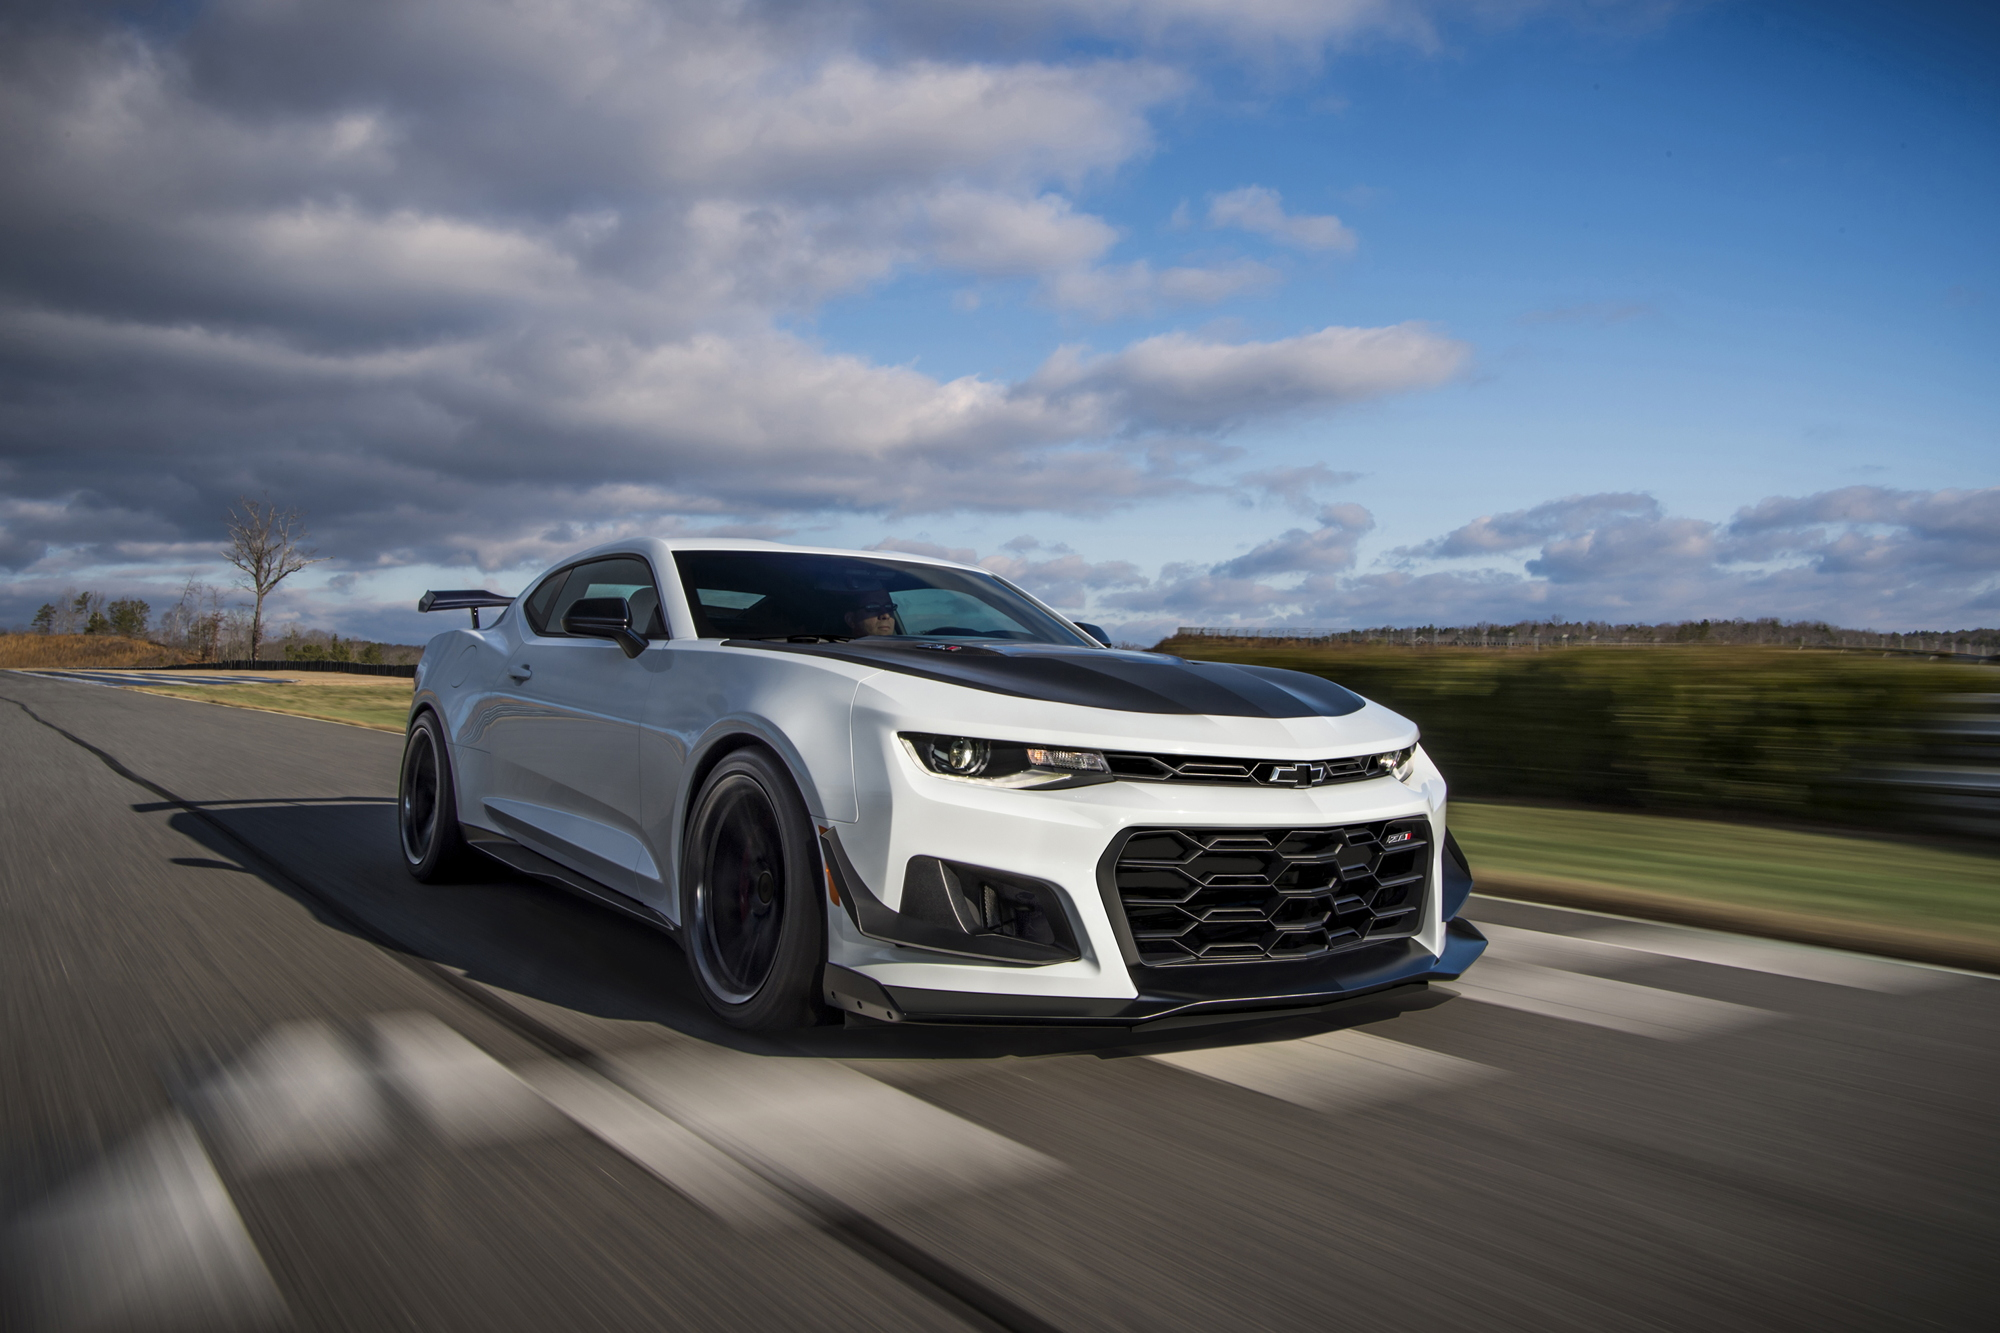 2018 Chevrolet Camaro ZL1 1LE on track